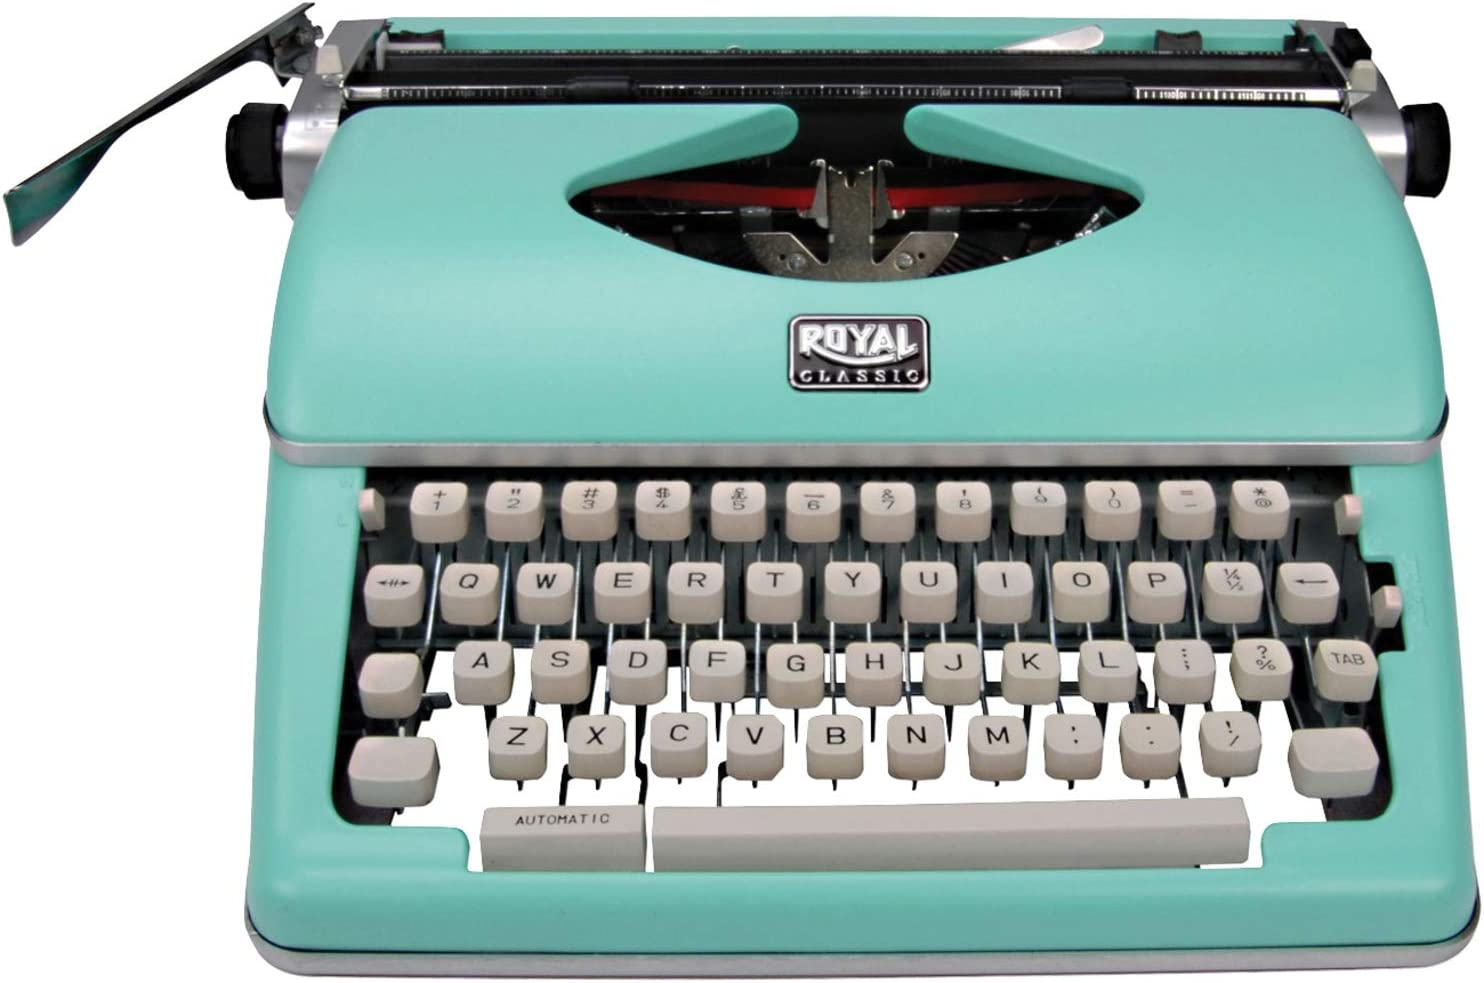 Royal 79101t Classic Manual Typewriter (mint Green)